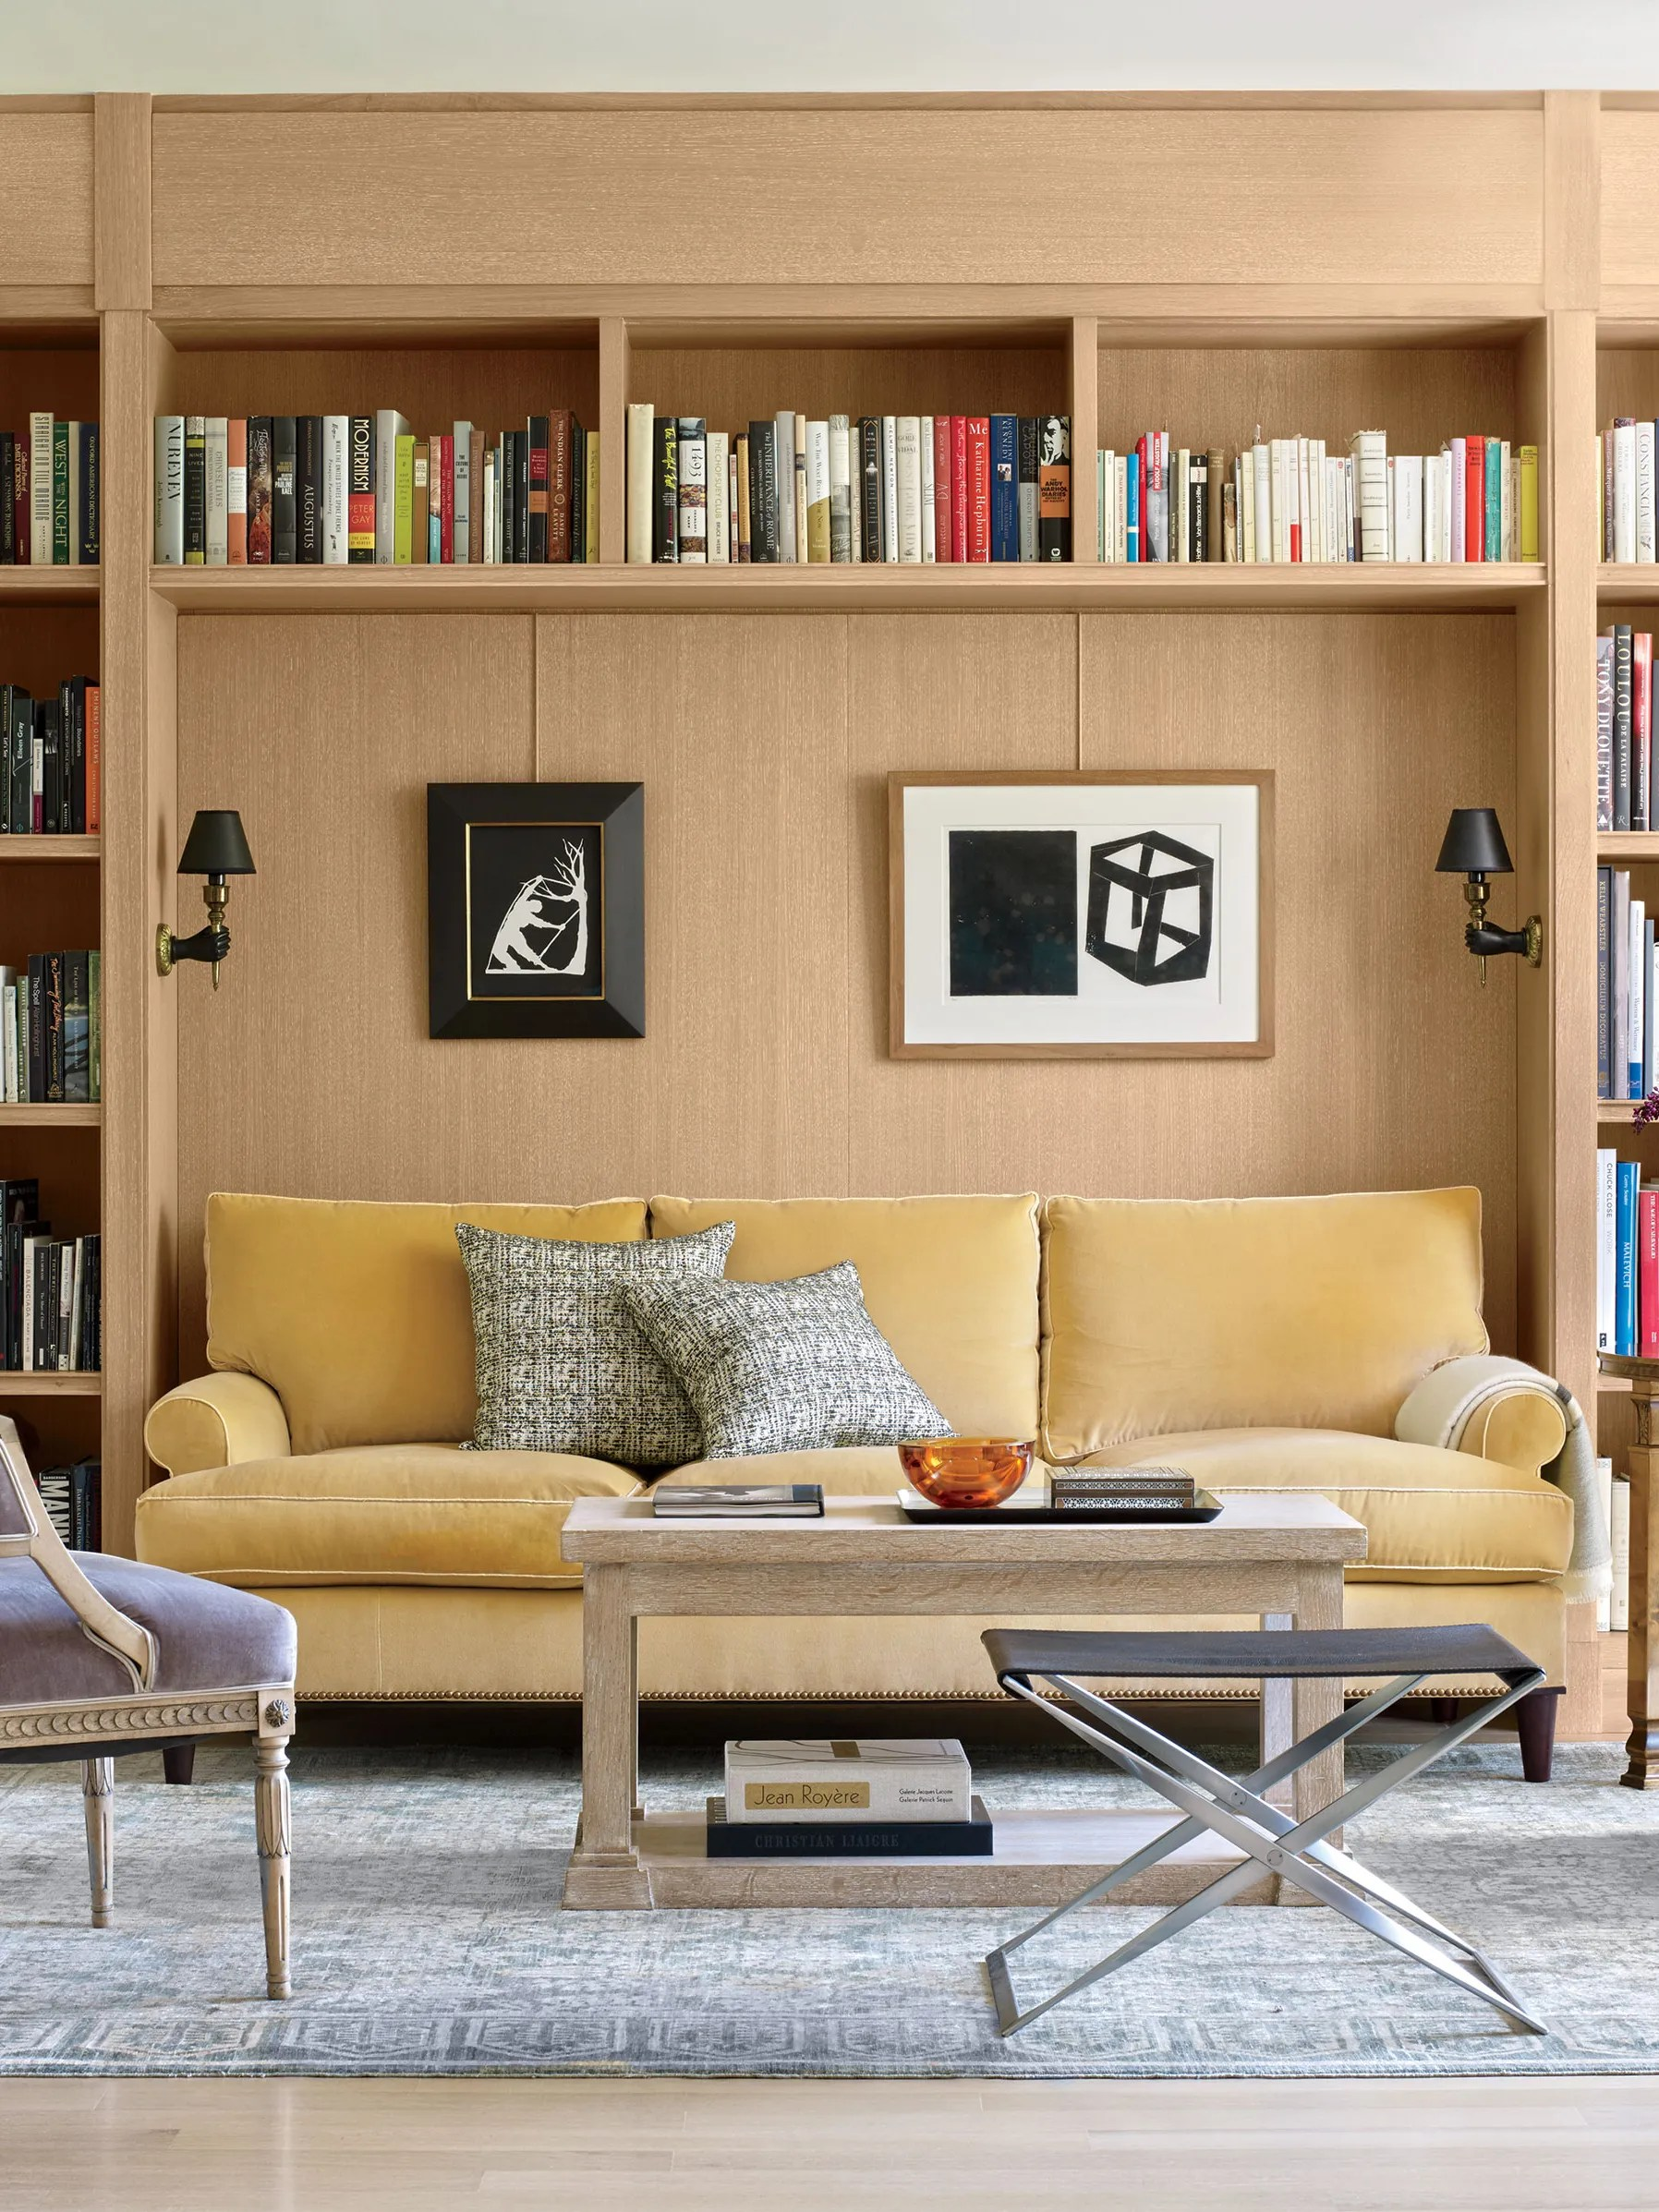 How To Decorate A Bookshelf 25 Stylish Design Tips For Your